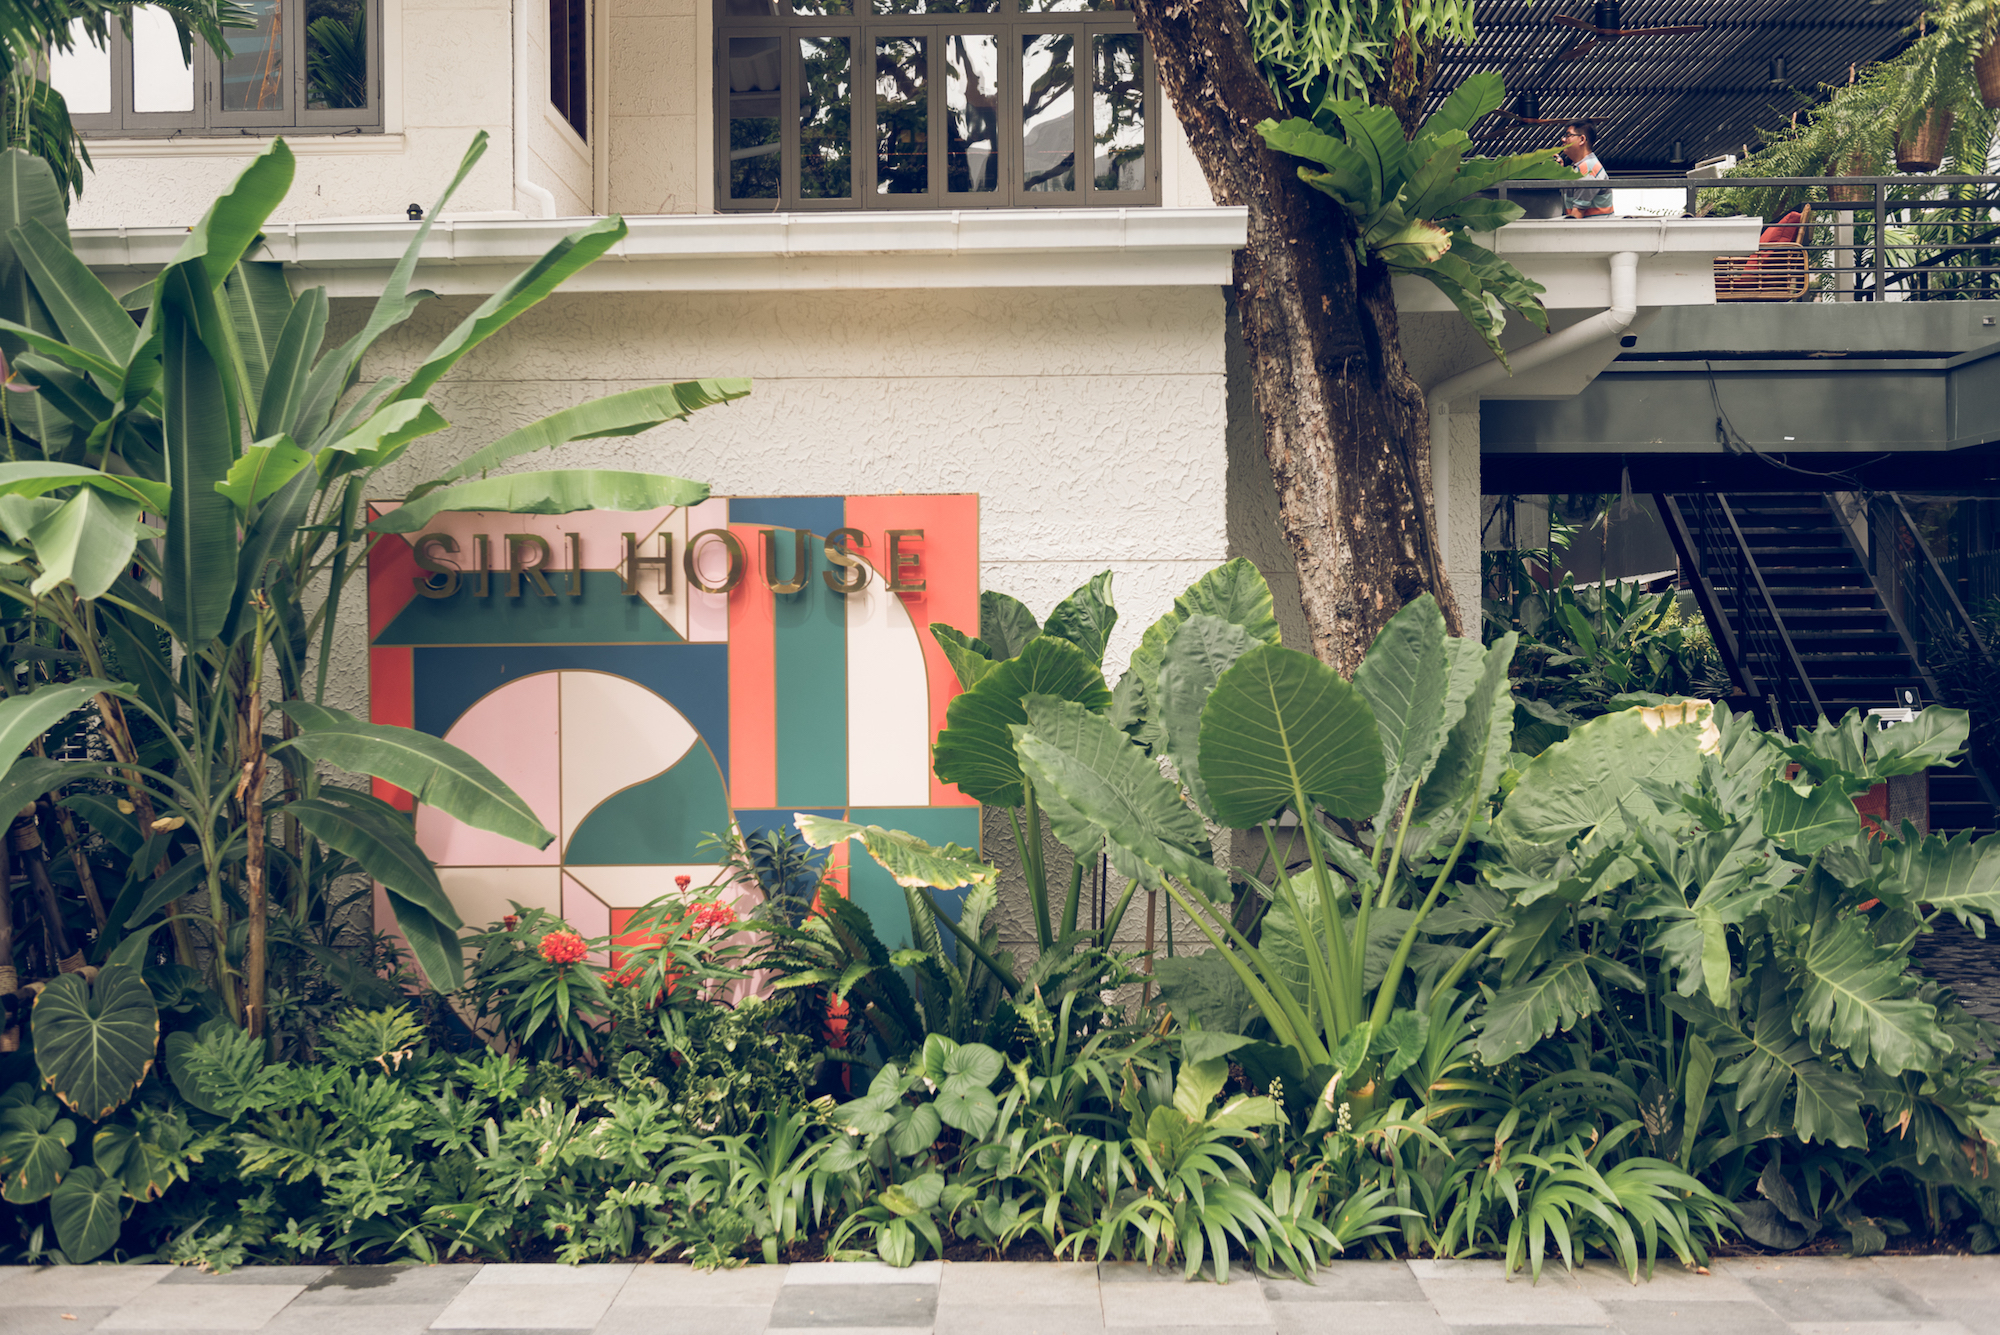 Gallery: Lifestyle Asia Bangkok Preview Party at Siri House